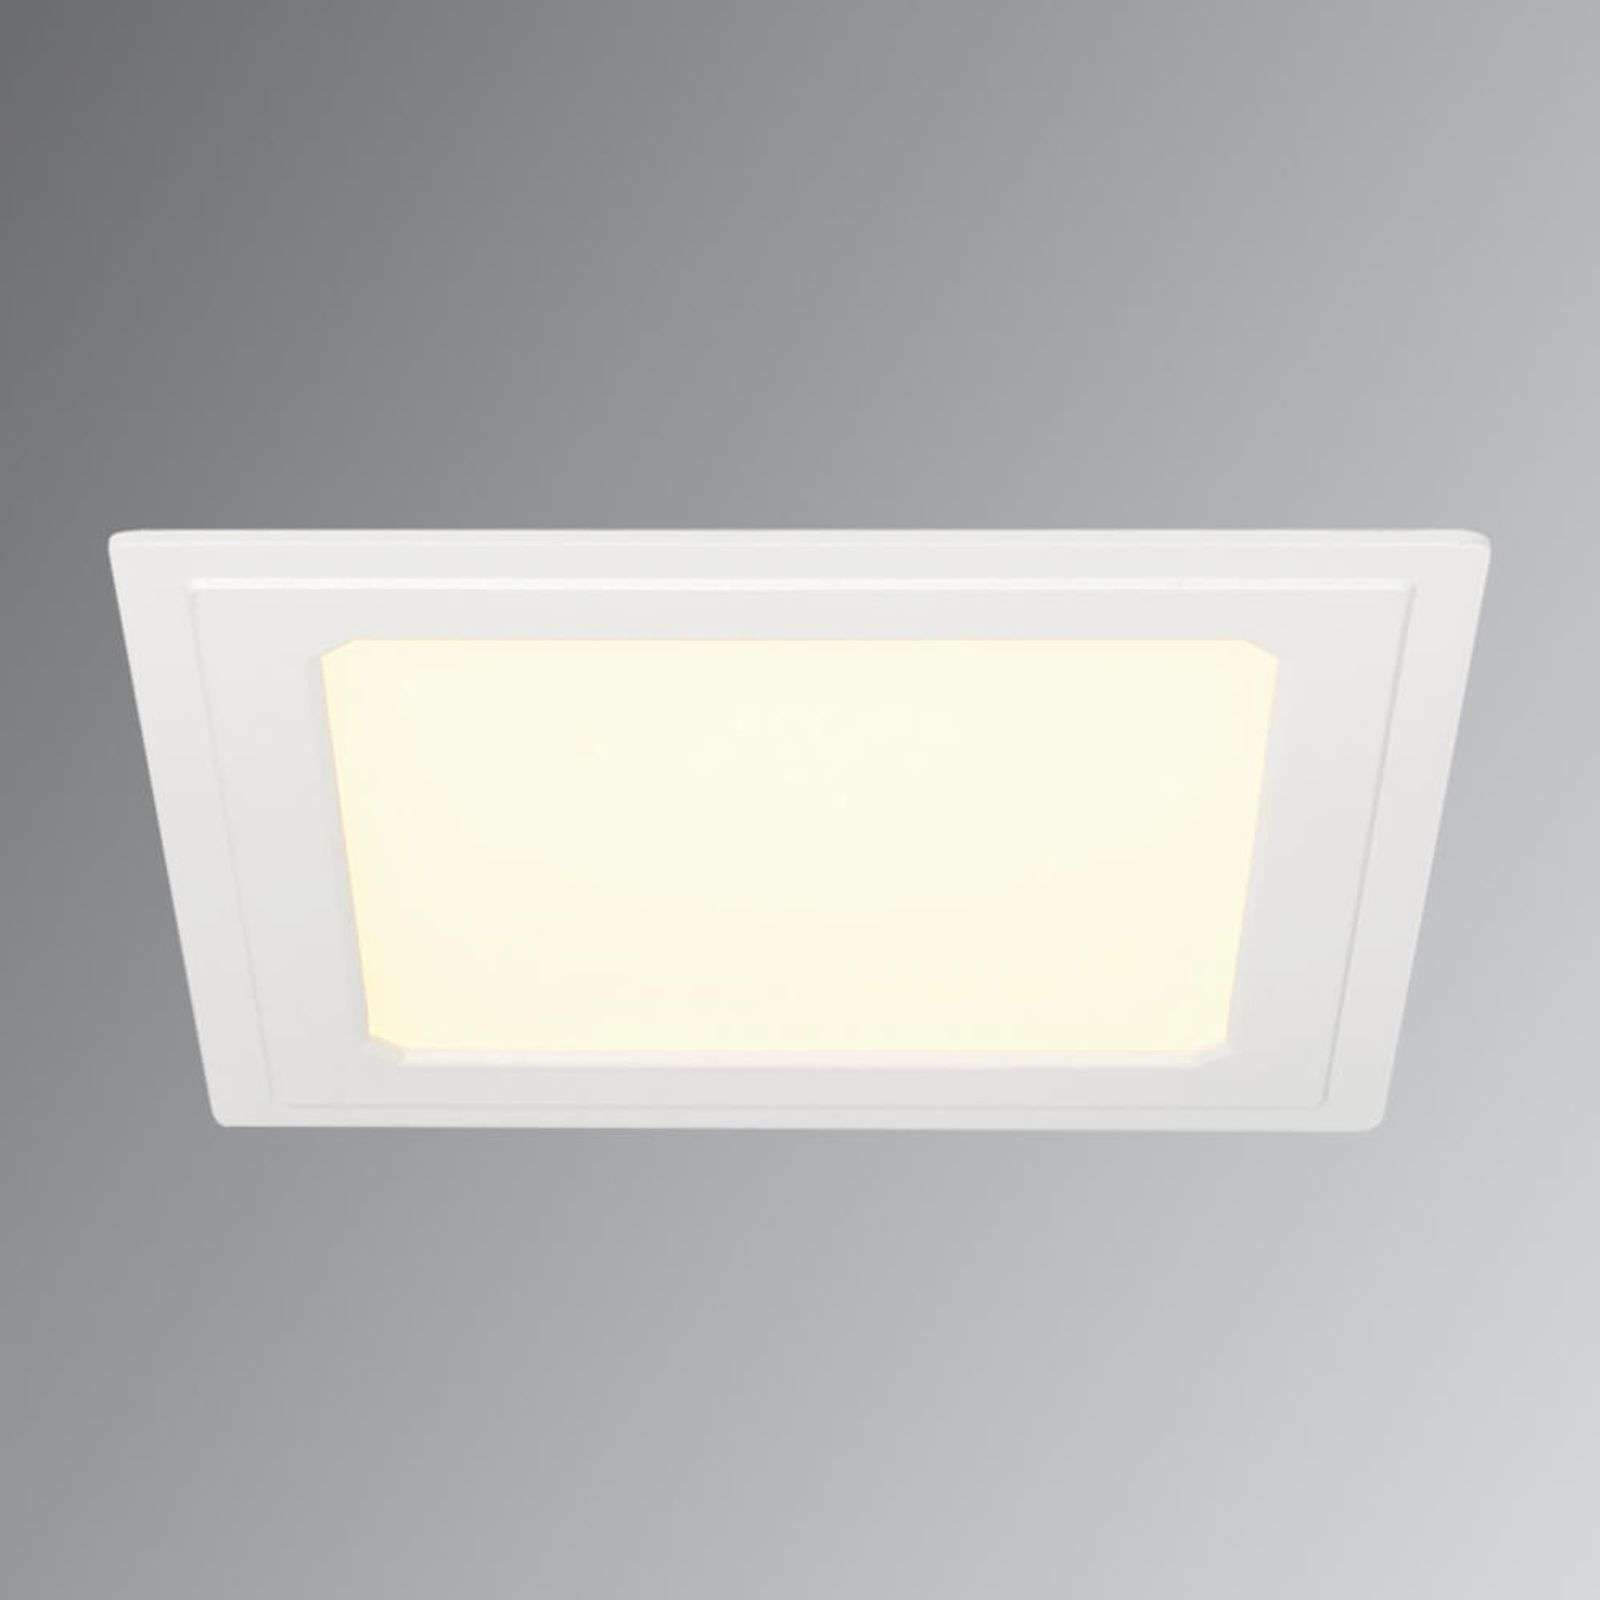 LED plafondlamp Senser 10 in wit